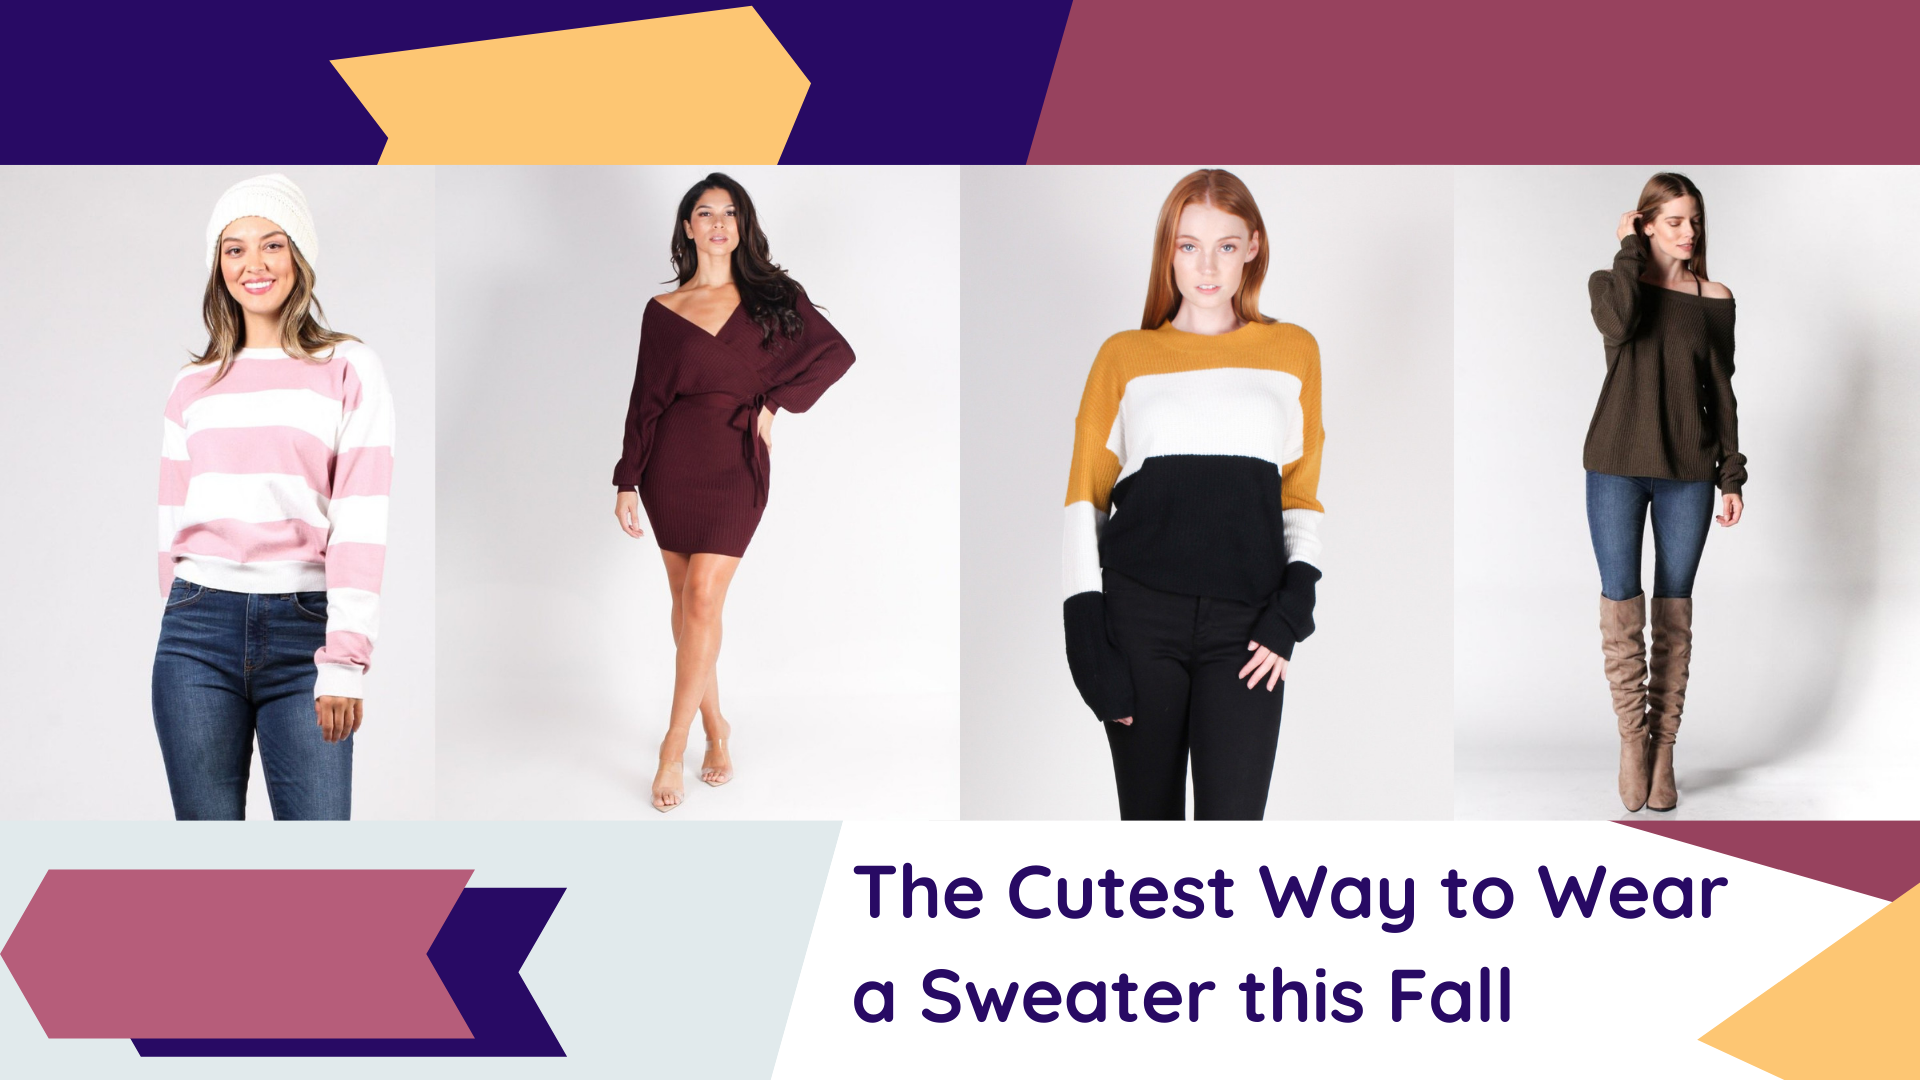 The Cutest Way to Wear a Sweater this Fall